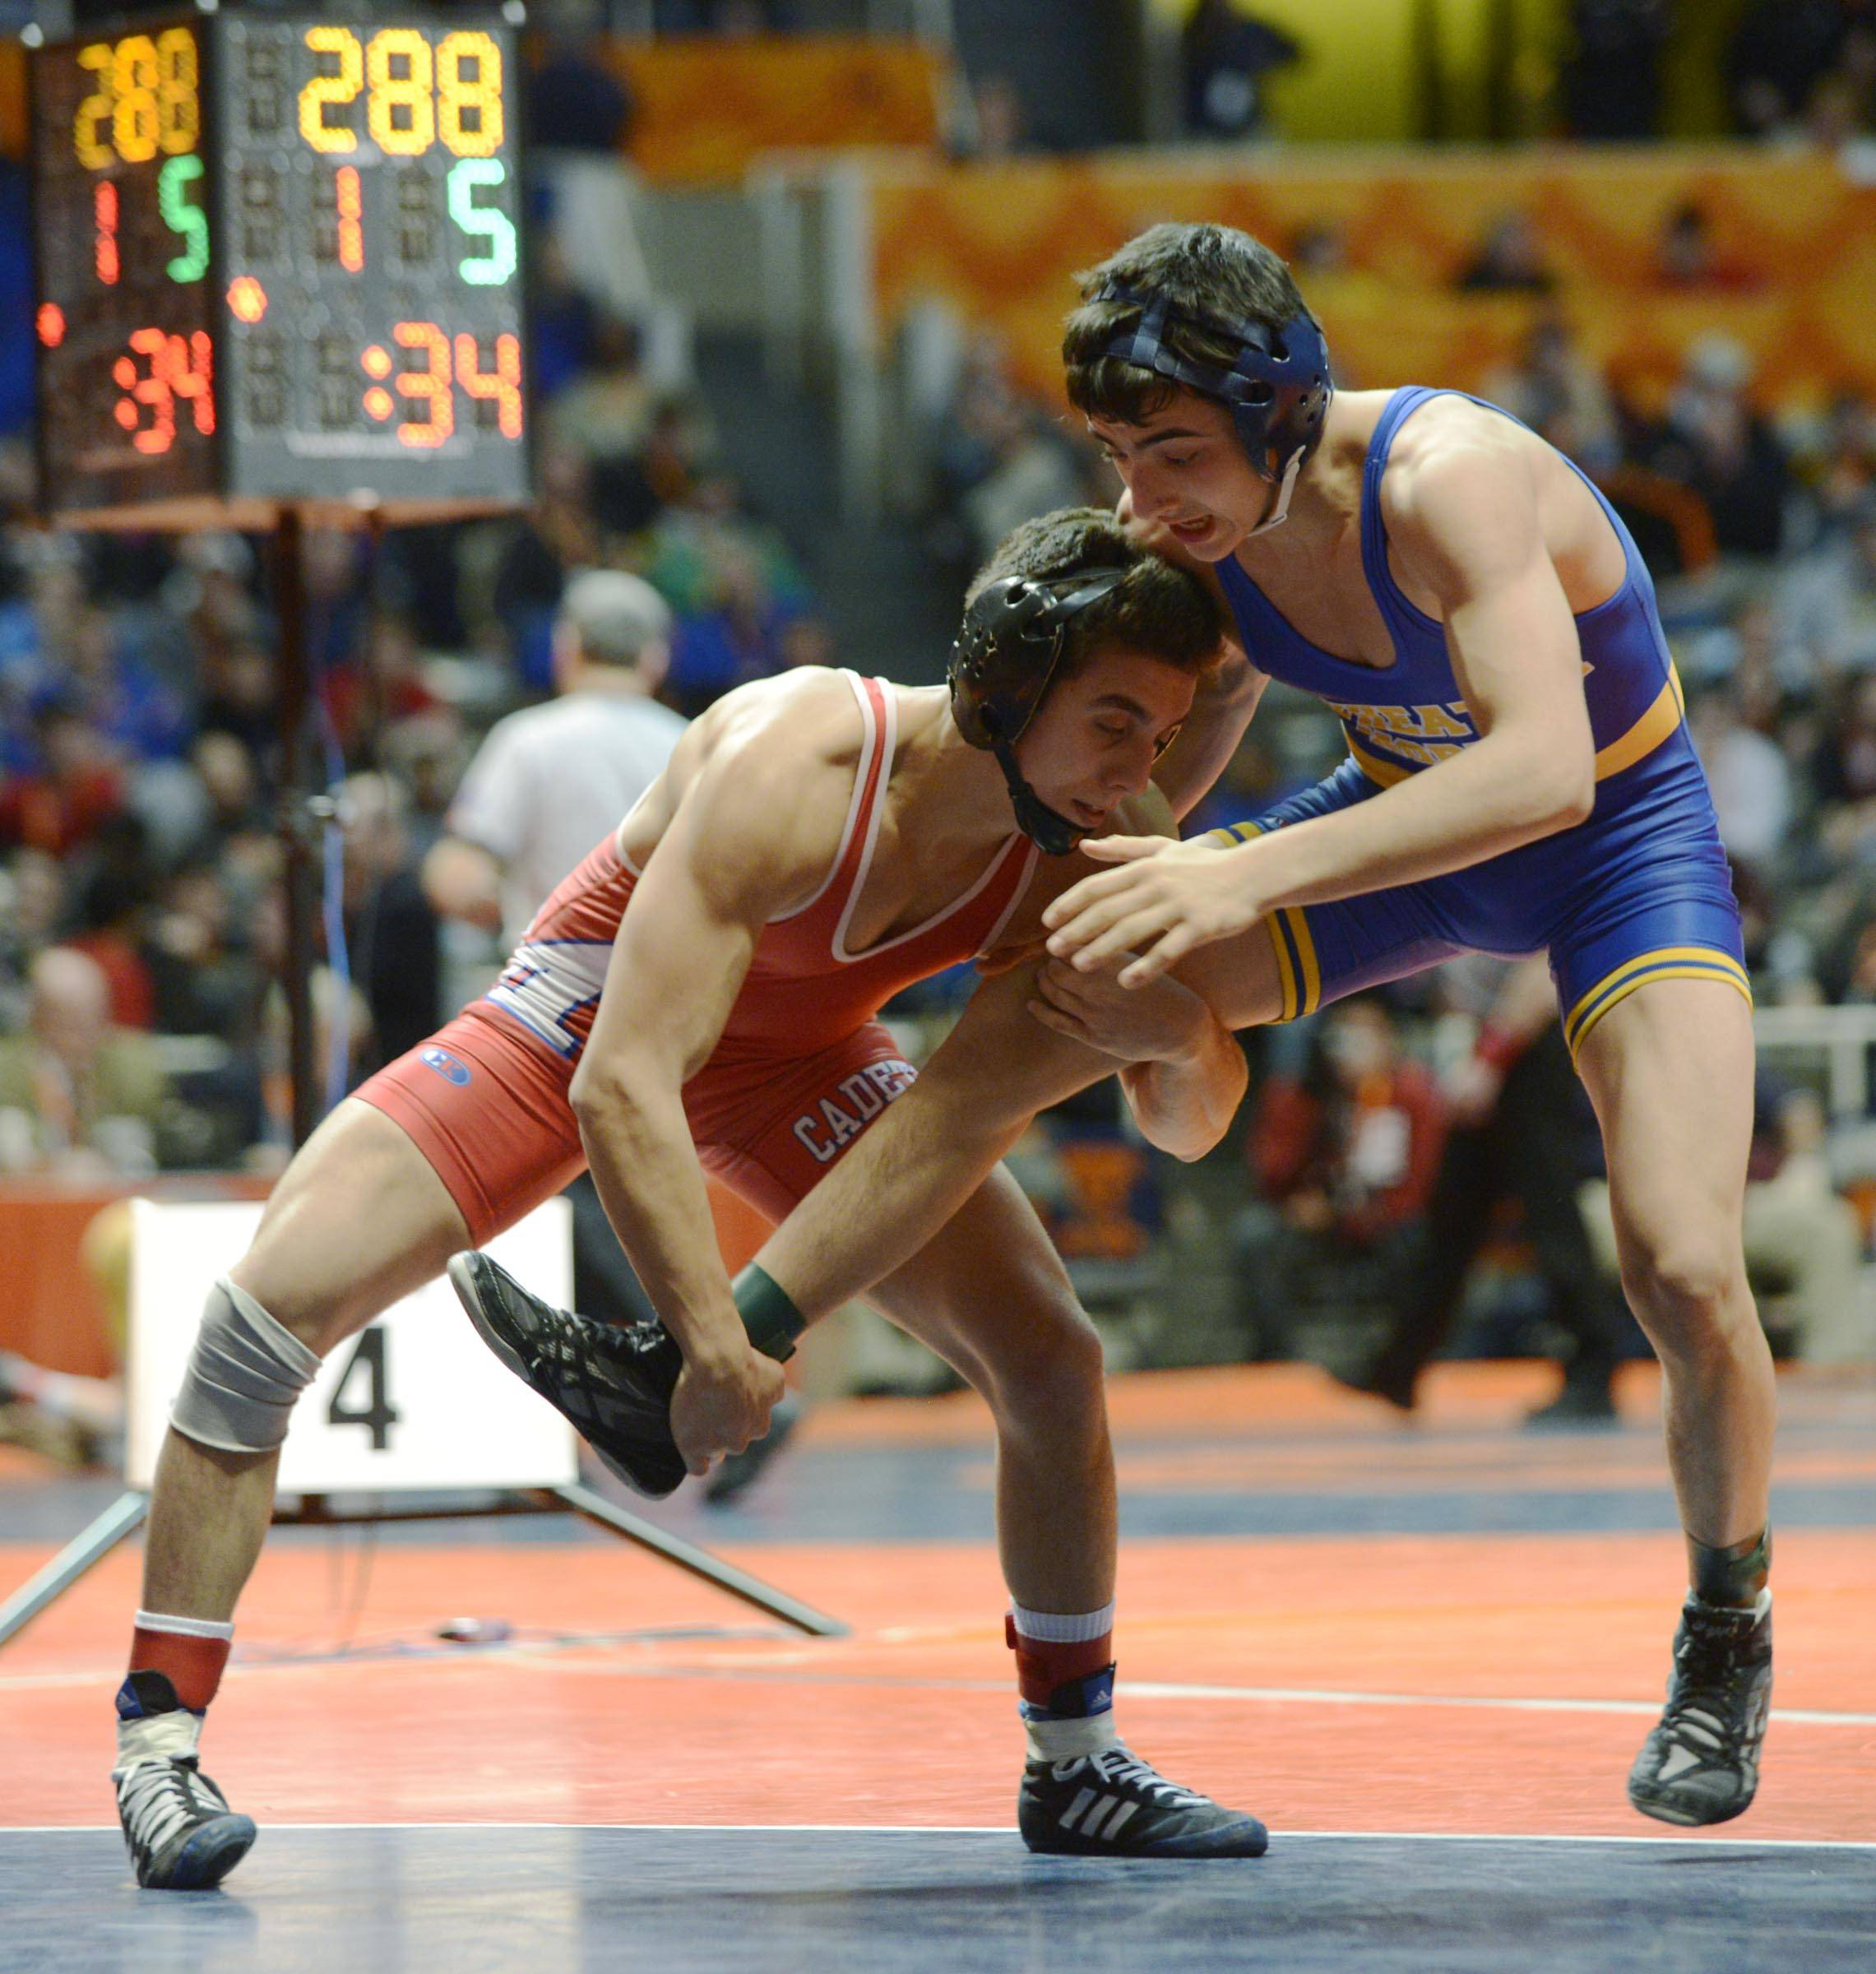 Johnny Jimenez of Marmion Academy, left, competes against Dylan Thurston of Wheaton North Friday in the 126-pound weight class semifinals of the wrestling IHSA Class 3A state tournament at State Farm Center in Champaign.